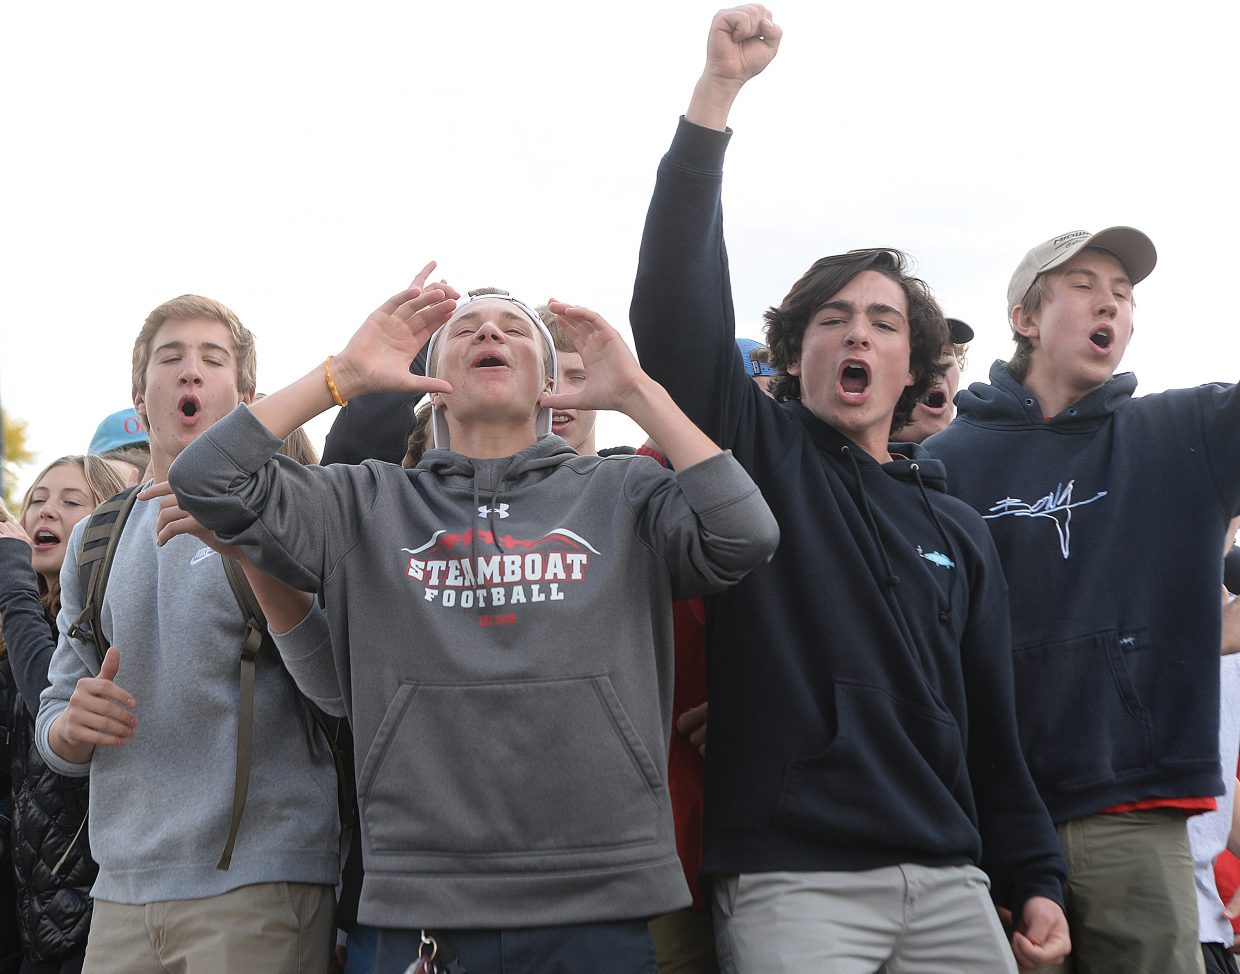 Sophomore Johnathon Kaminiski, middle, shows his spirit along with Tyden Baker, left, Cameron Colombo, to his right, and Matthew Kempers, far right, during the Steamboat Springs High School Homecoming parade Thursday afternoon on Lincoln Avenue. The big homecoming game will take place Friday with kickoff scheduled for 7 p.m.